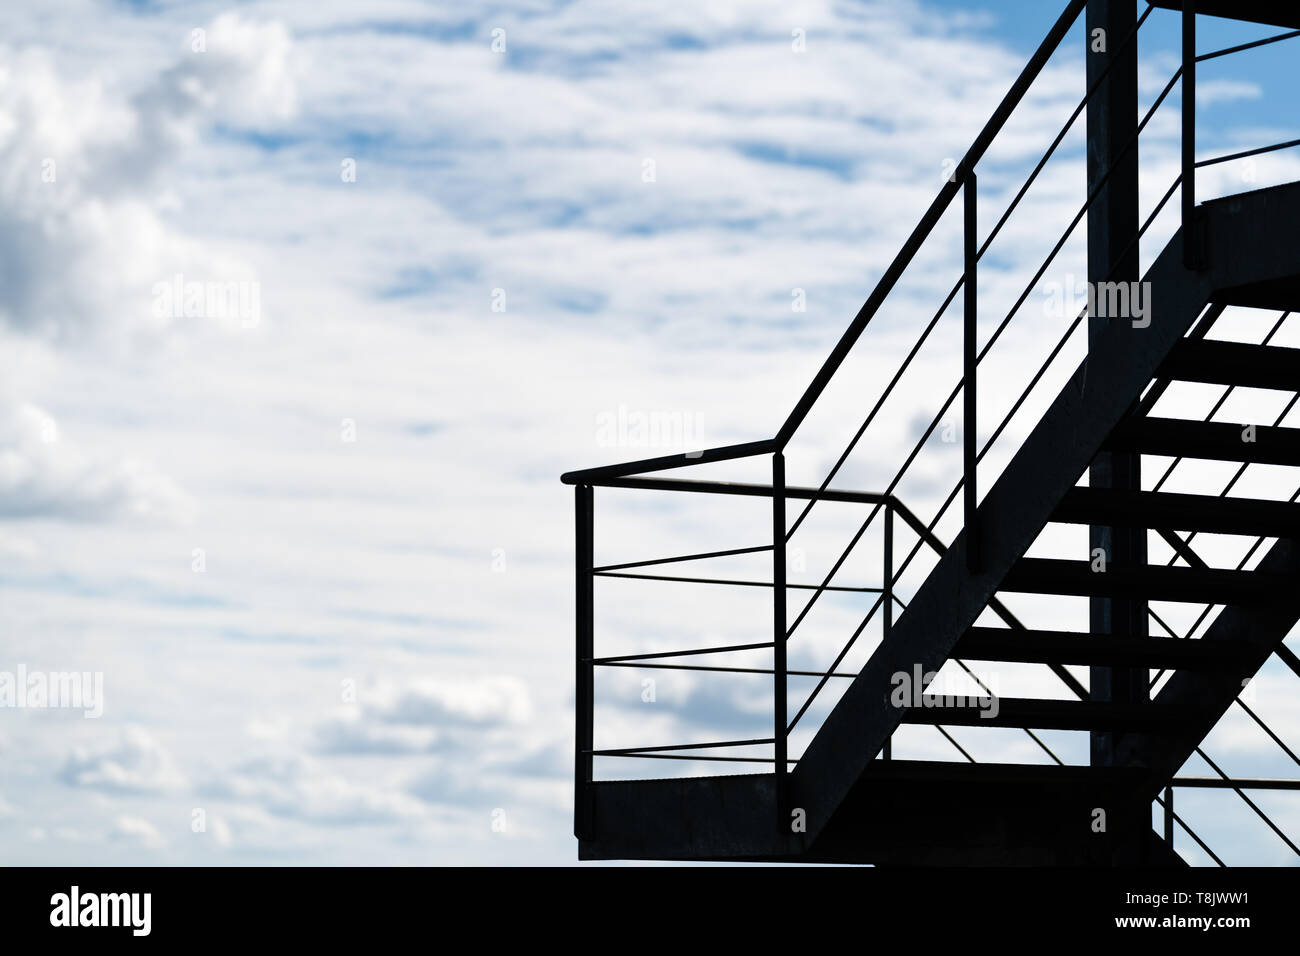 Stairway to heaven - a fire escape or an external staircase on a building silhouetted against a cloudy sky Stock Photo